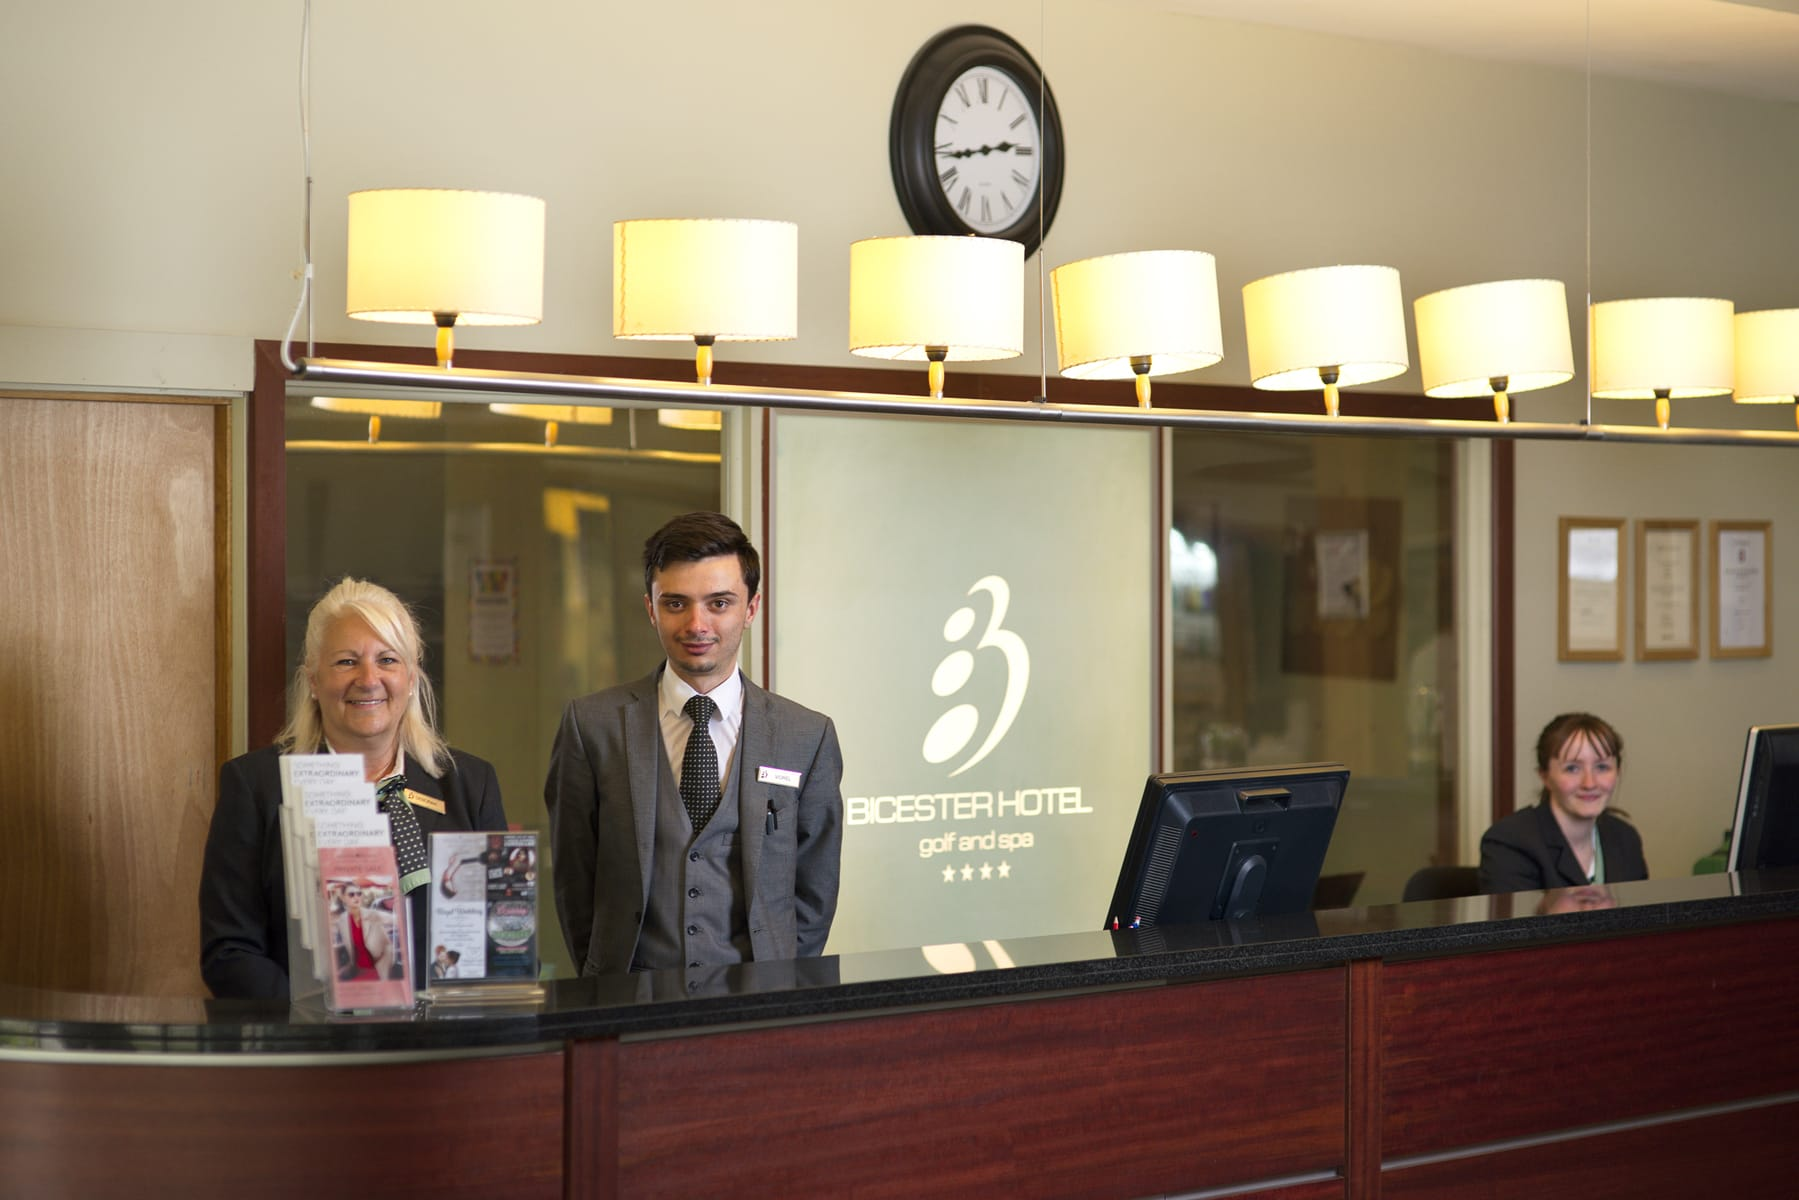 Reception at Bicester, receptionists